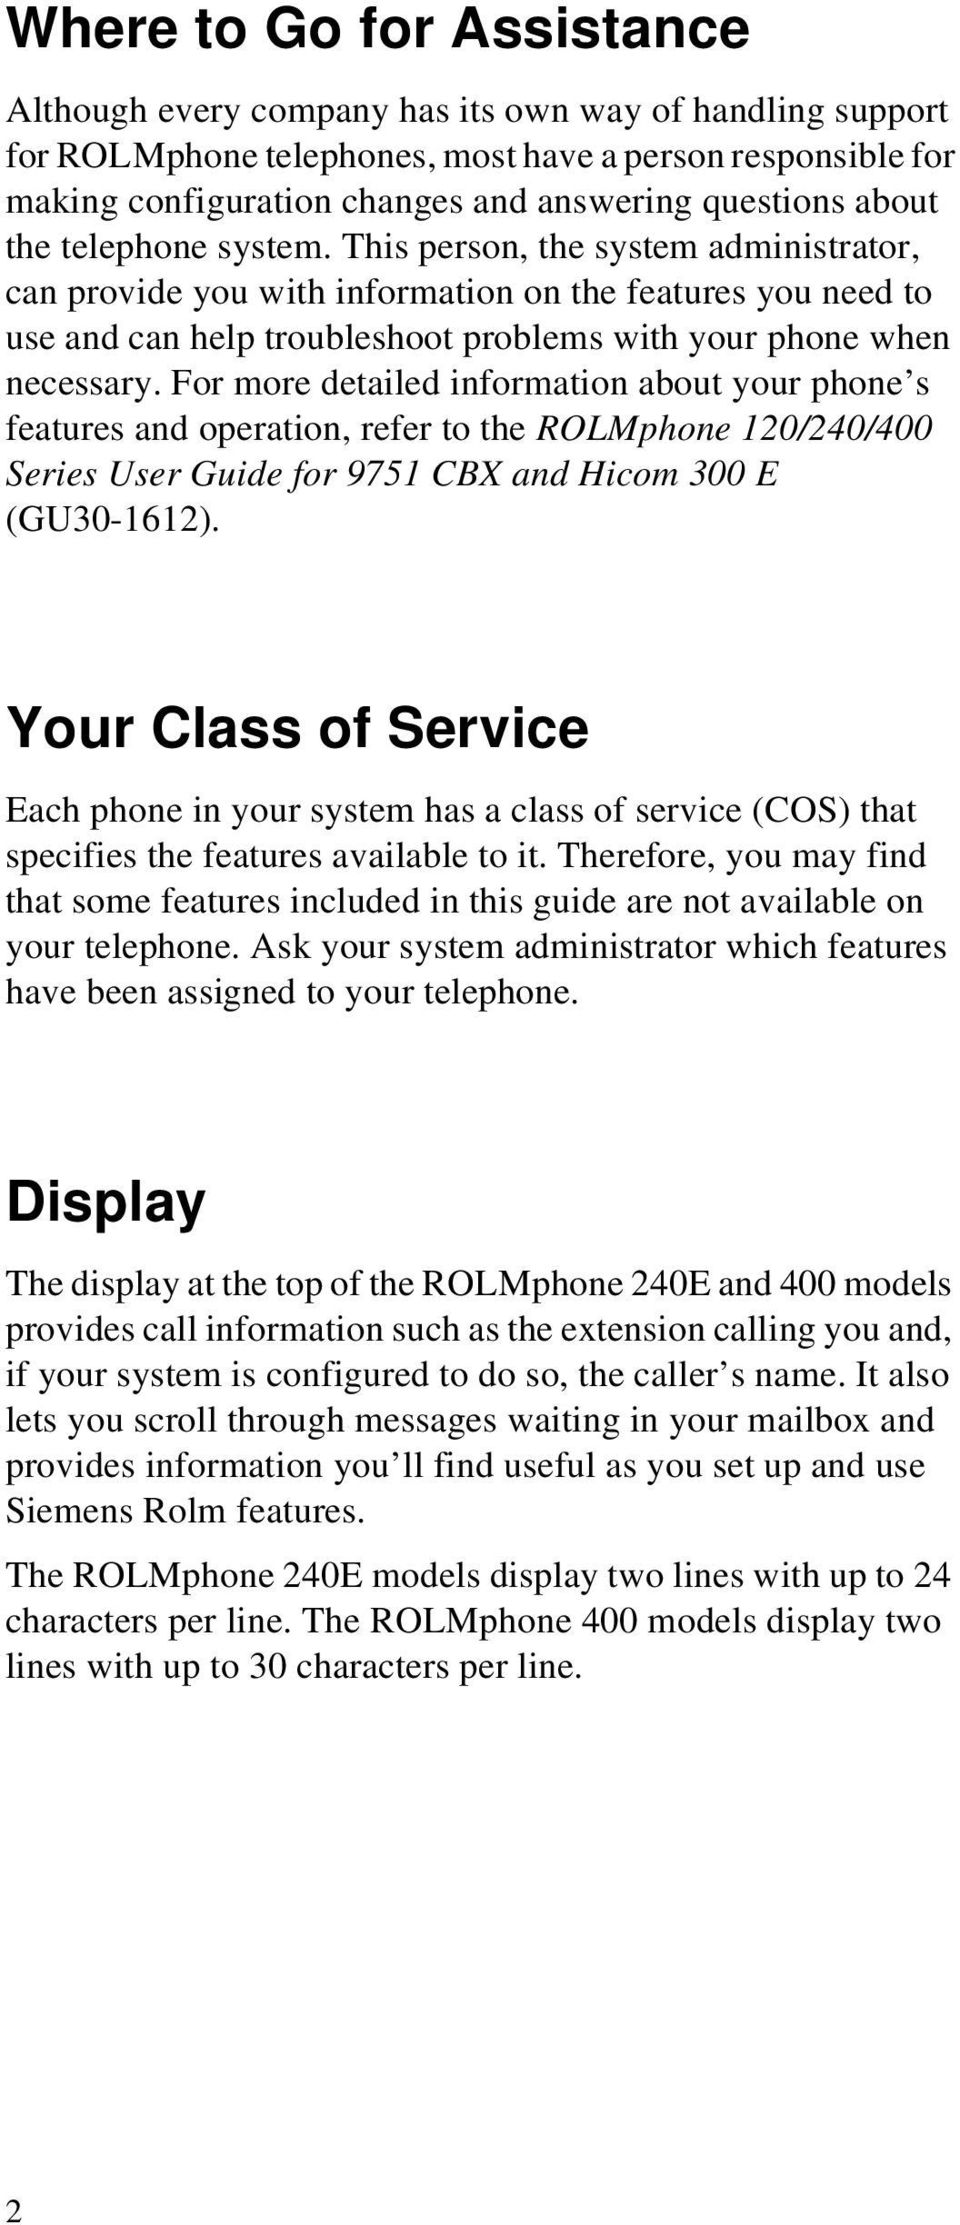 For more detailed information about your phone s features and operation, refer to the ROLMphone 120/240/400 Series User Guide for 9751 CBX and Hicom 300 E (GU30-1612).